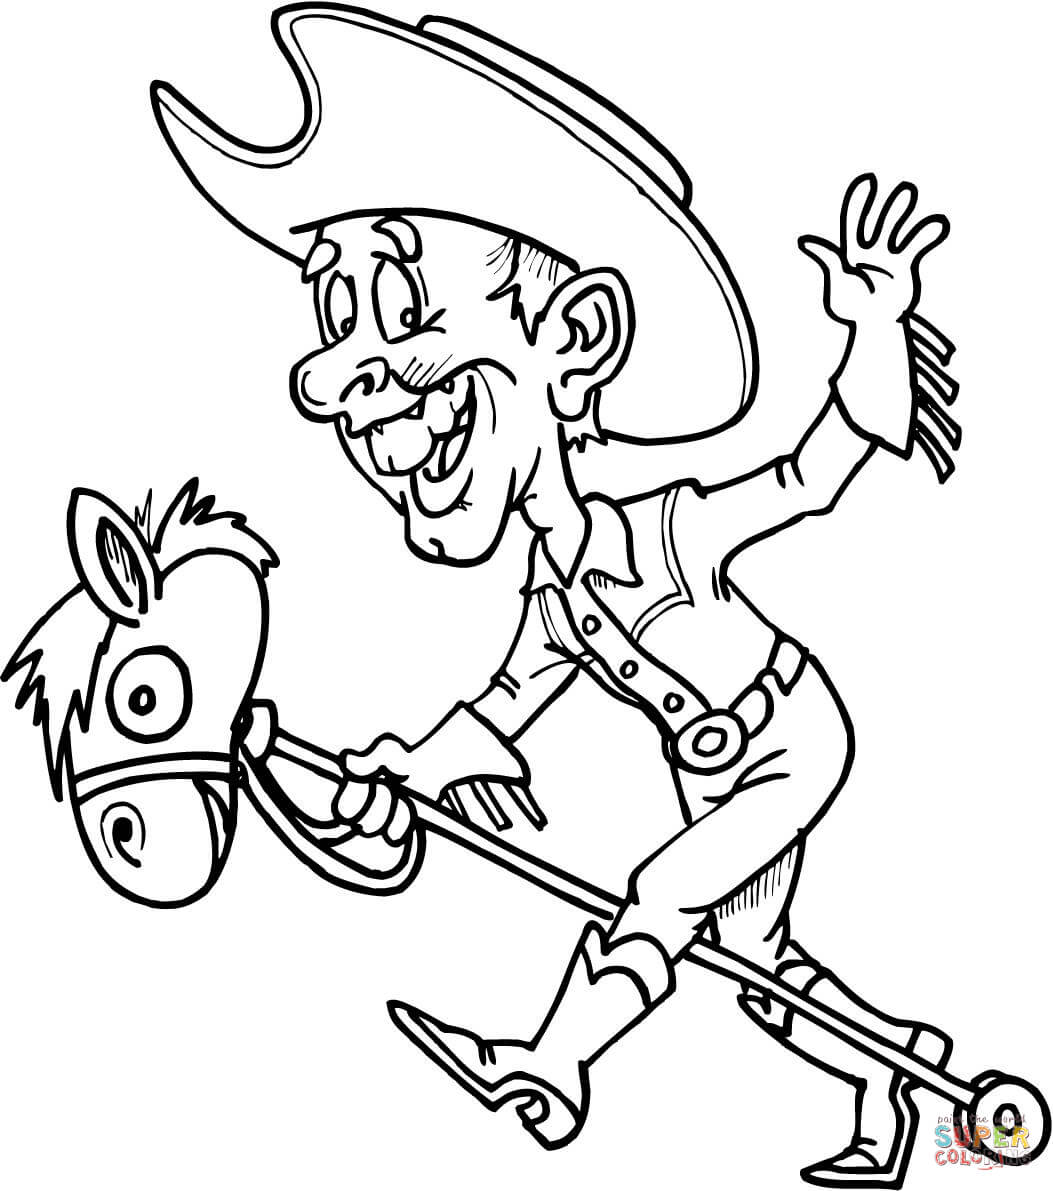 team roping coloring pages sketch of team roping saddle coloring pages pages coloring roping team